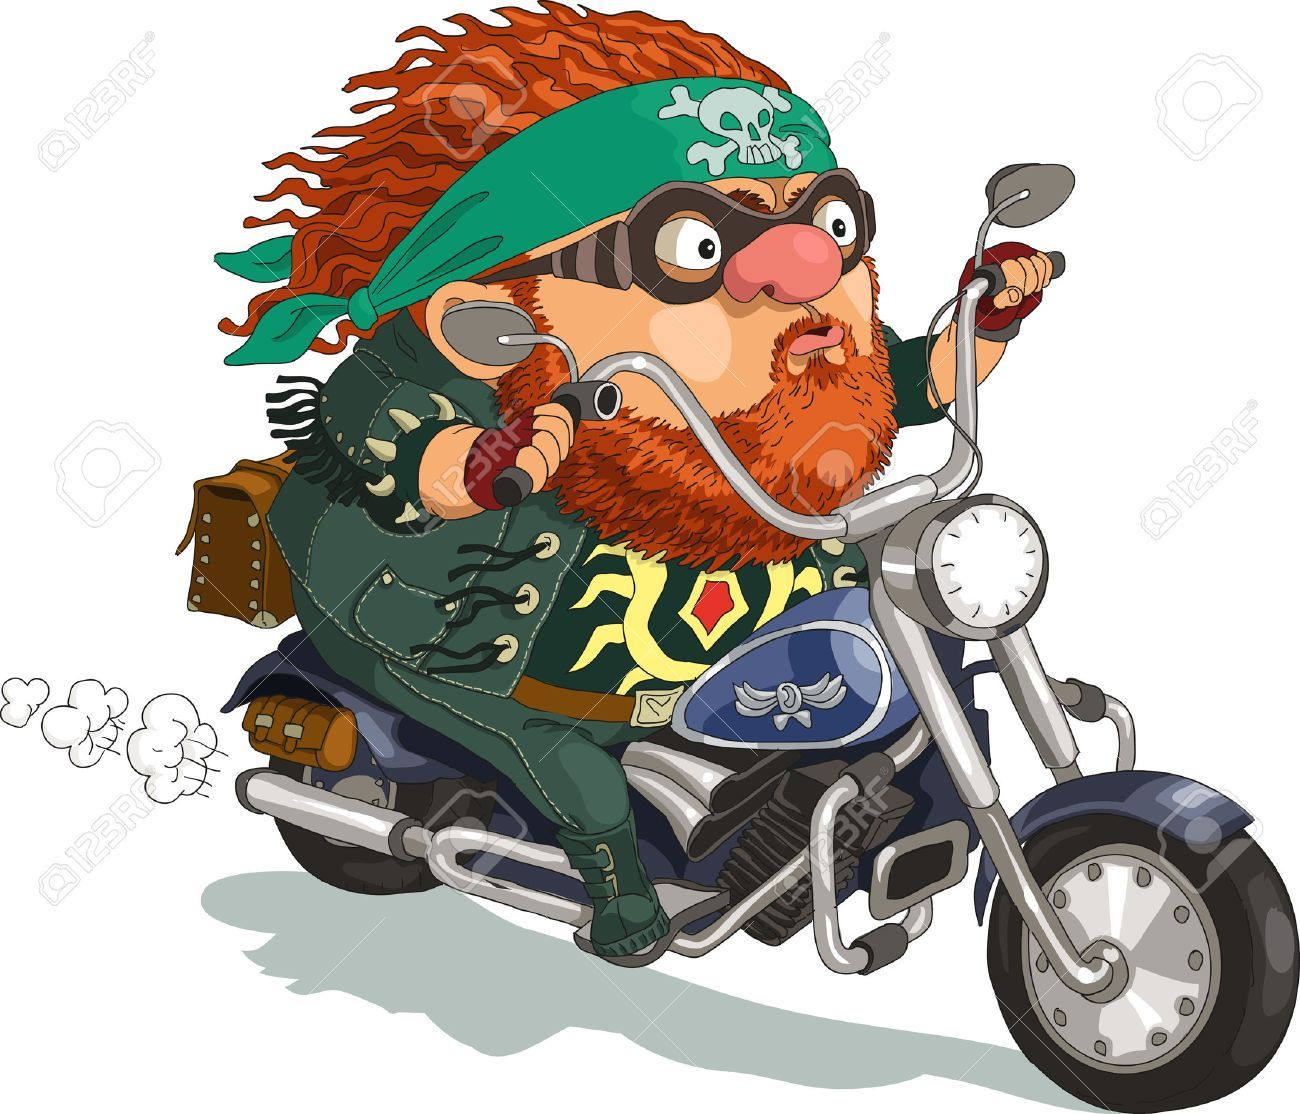 svg free Stock vector download cartoon. Beard clipart biker.